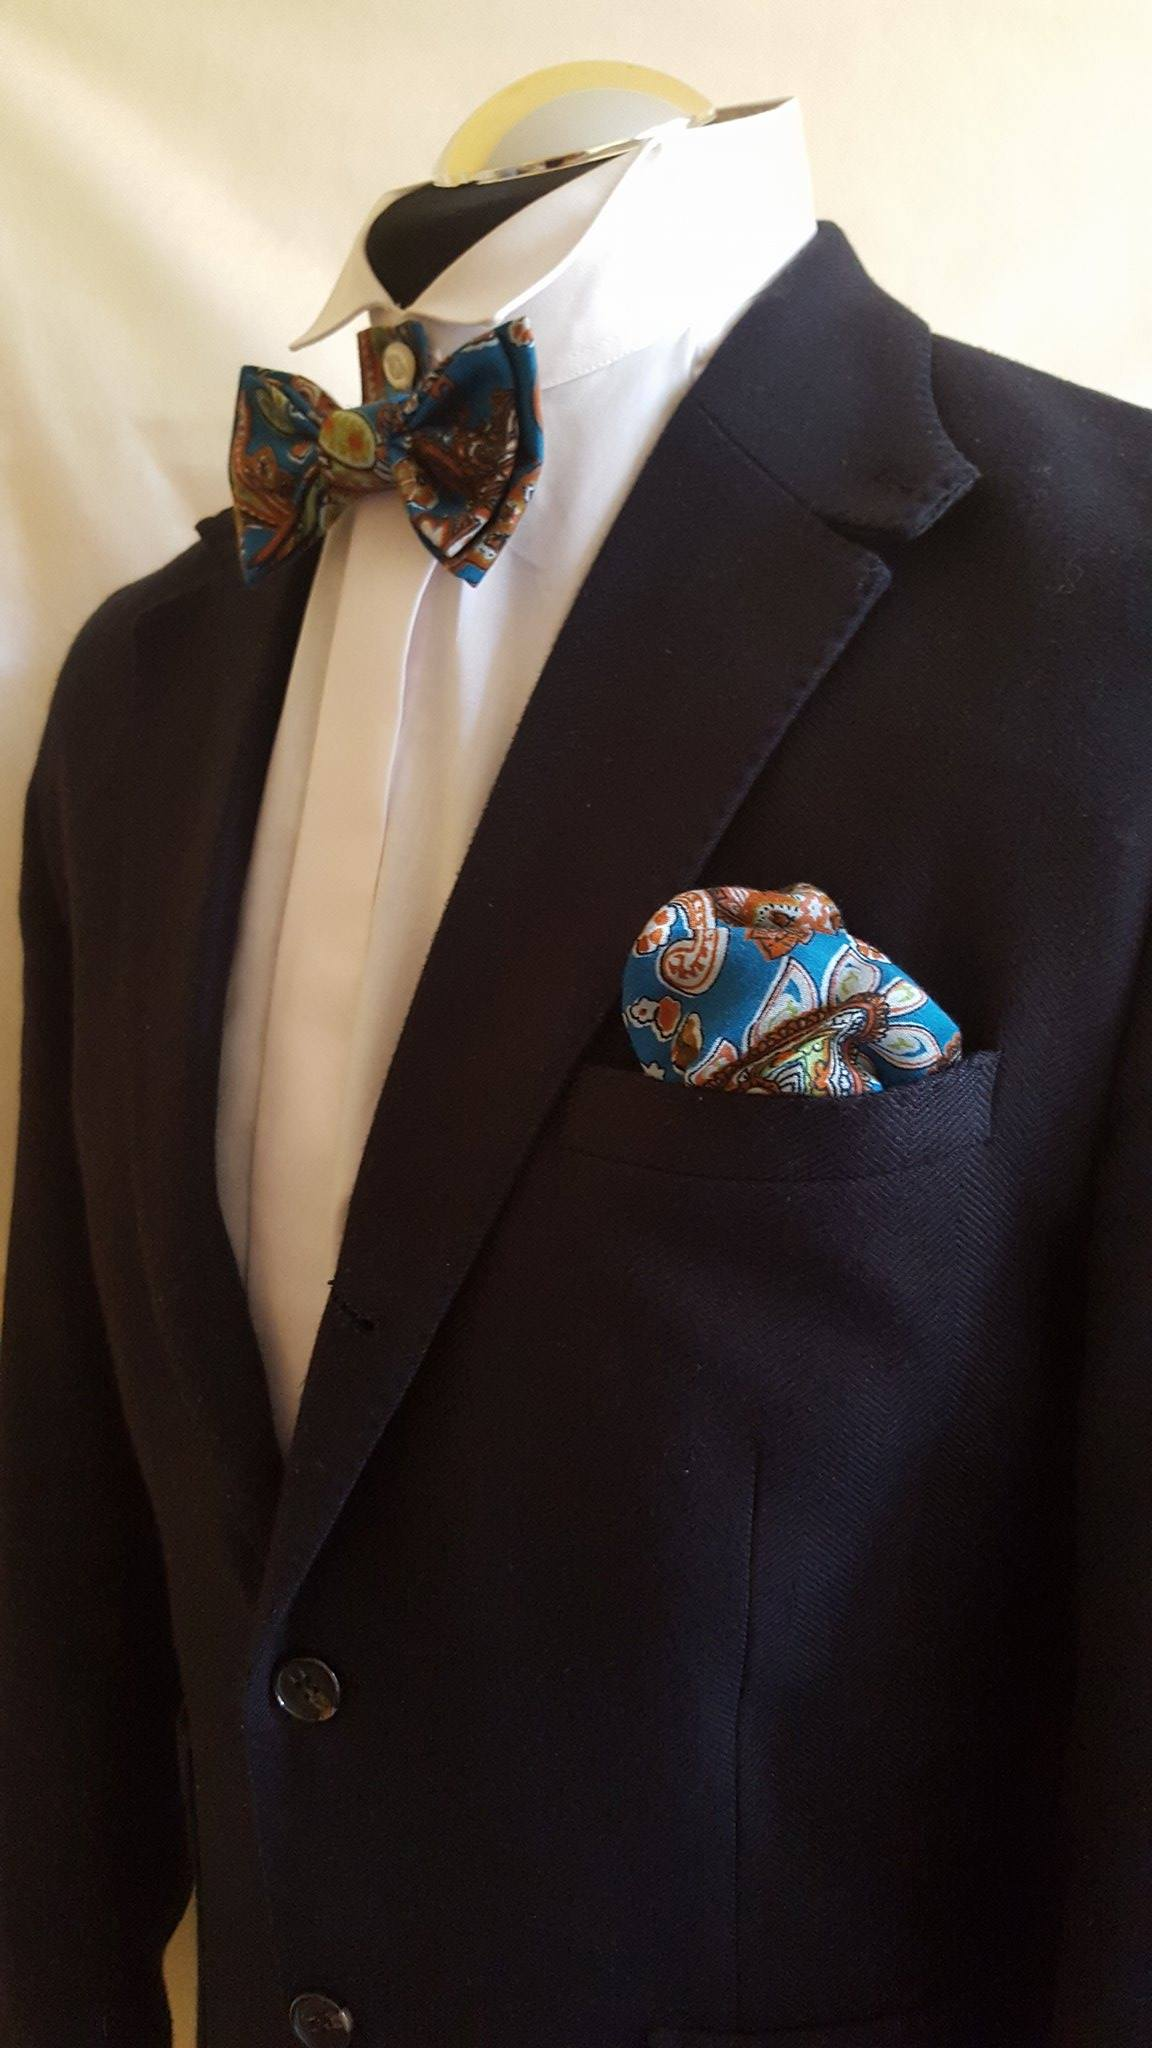 3 Match Your Pocket Handkerchief With Bow Tie A Perfect Looks Tacky And Over Planned However The Square Should Complement